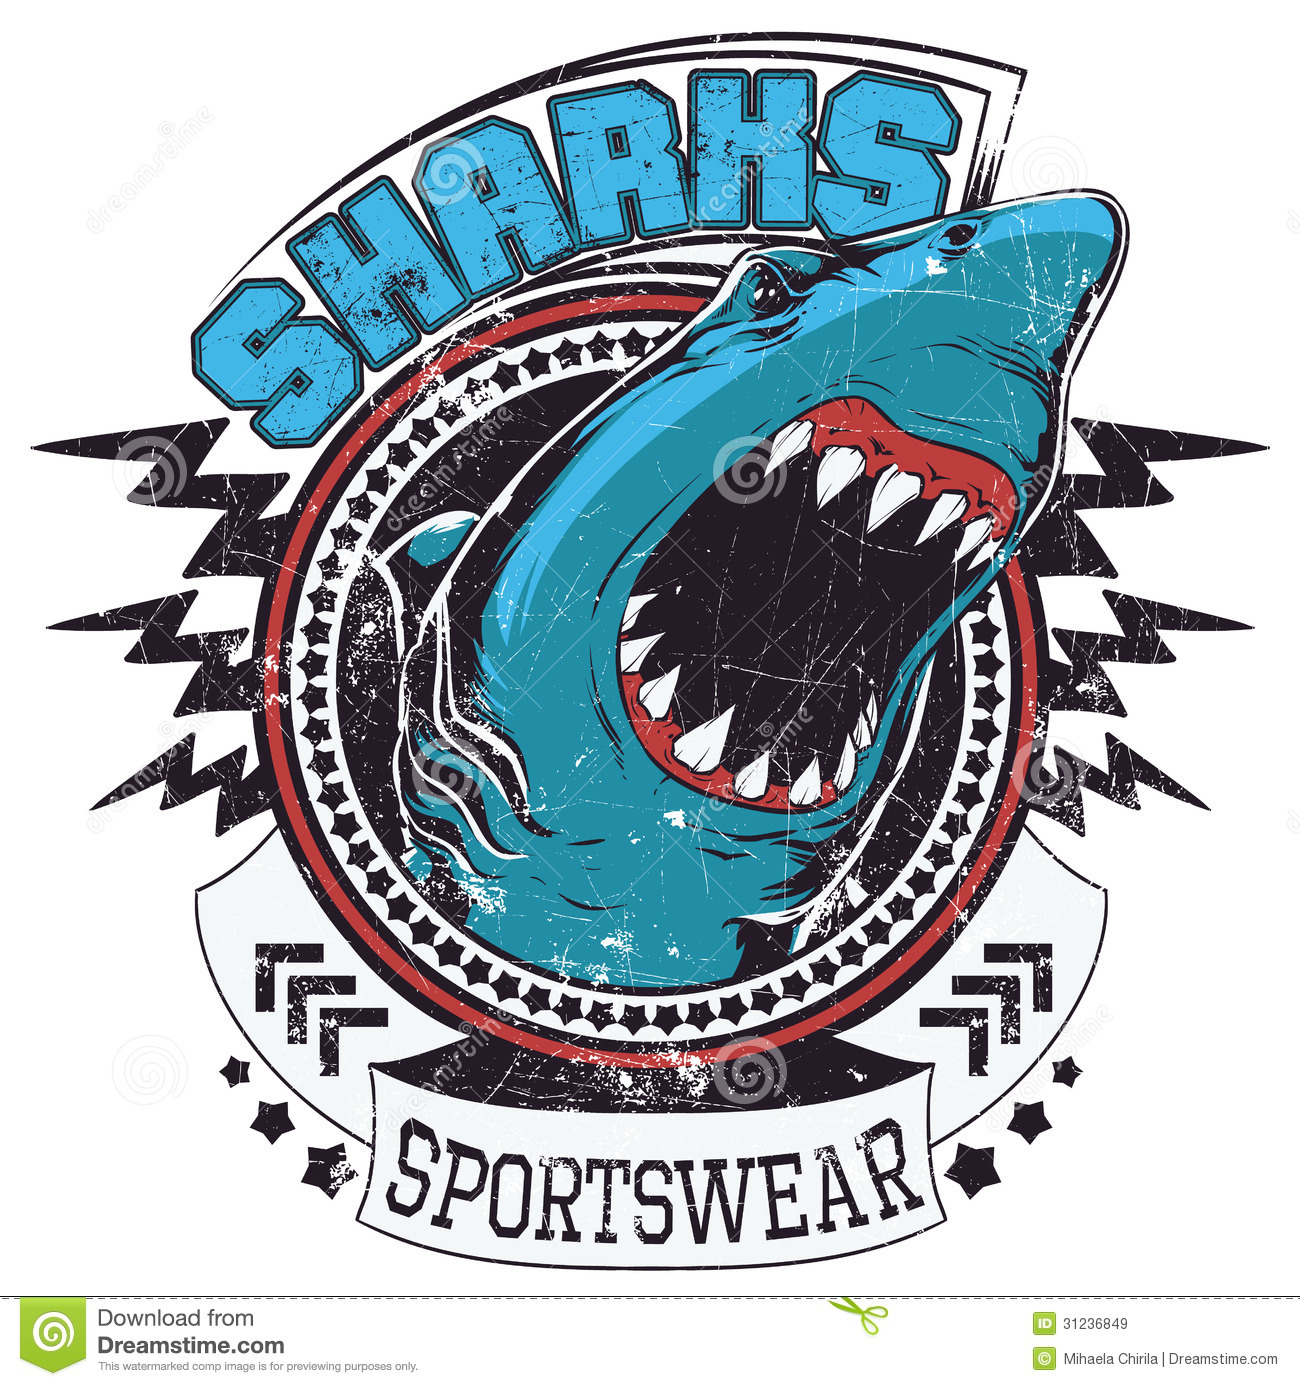 Sharks Sportswear Royalty Free Stock Images - Image: 31236849